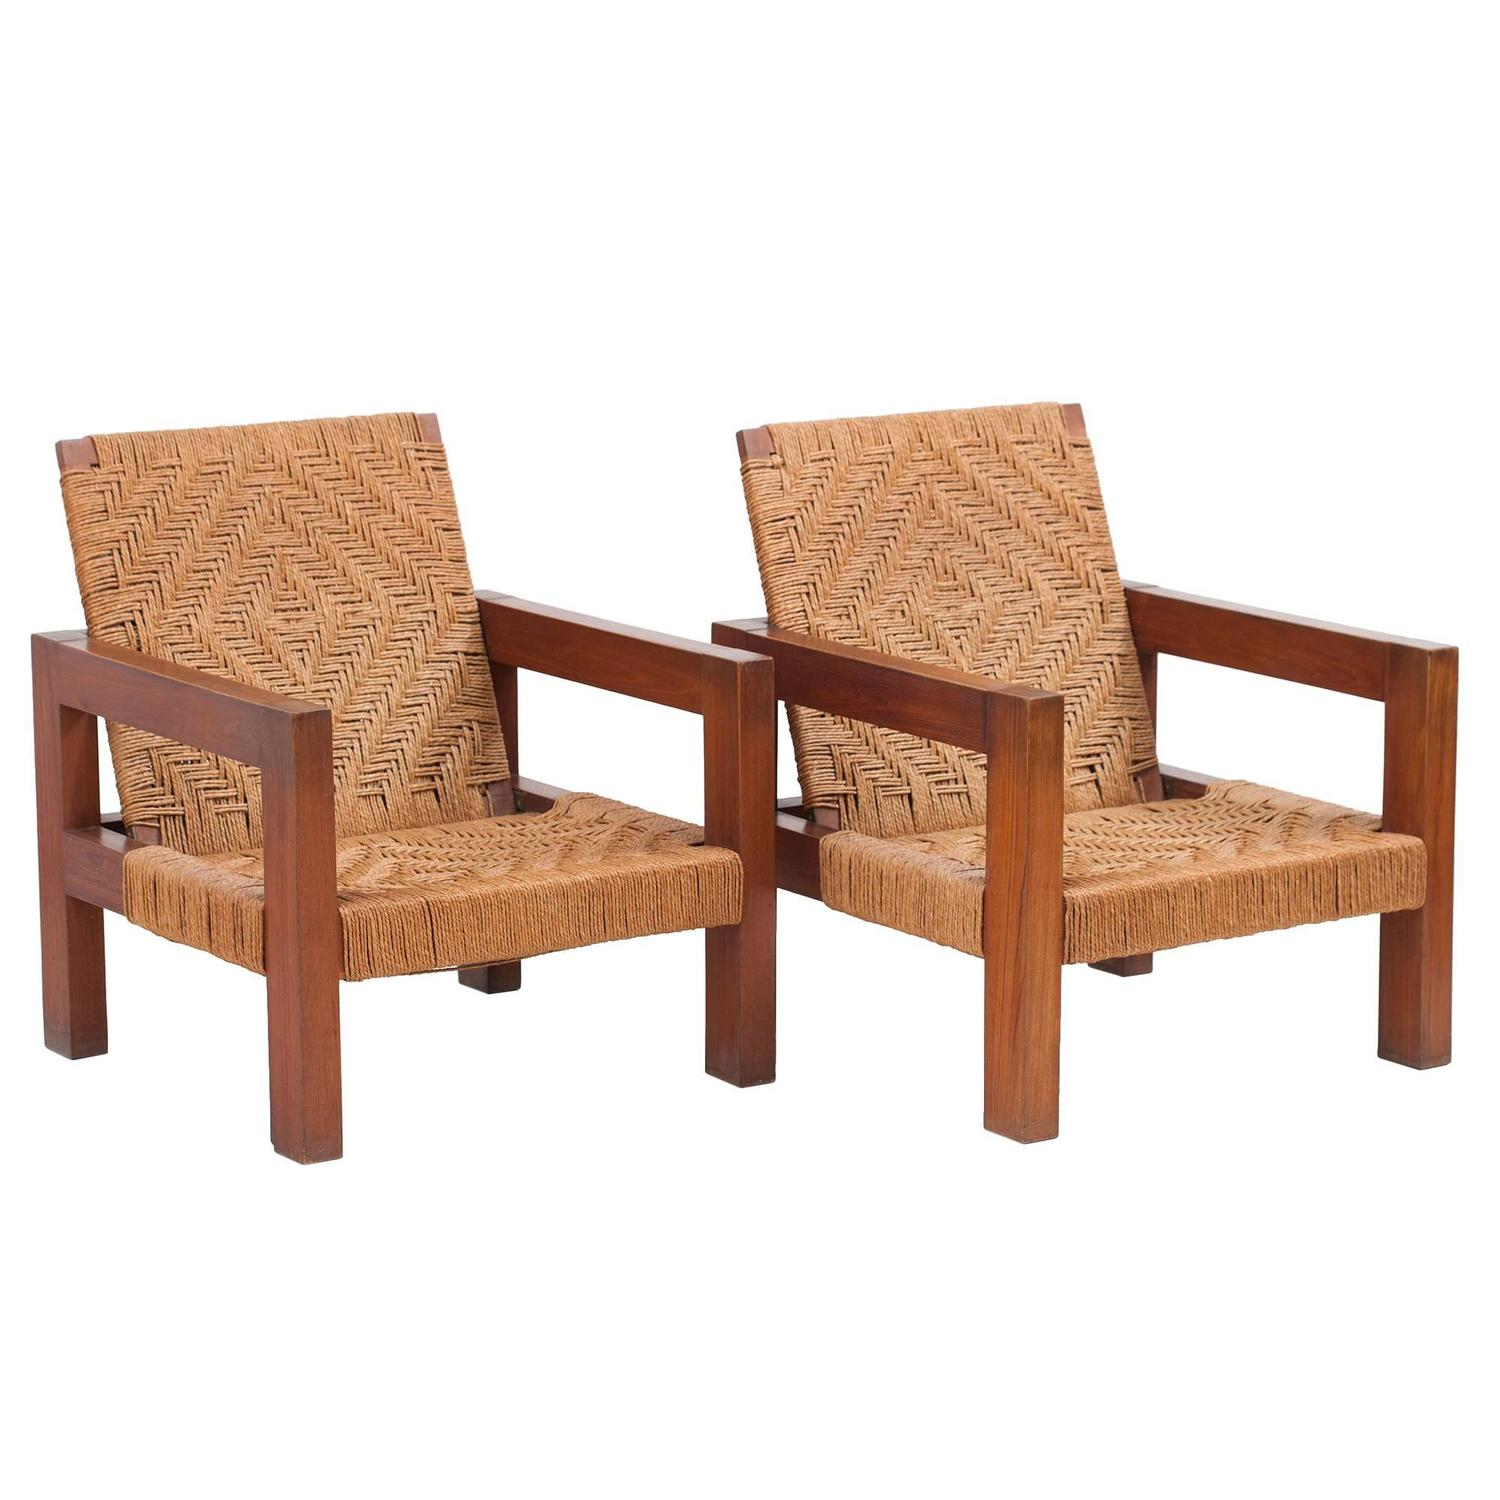 Pair Of Indian Modernist Teak And Jute Lounge Chairs